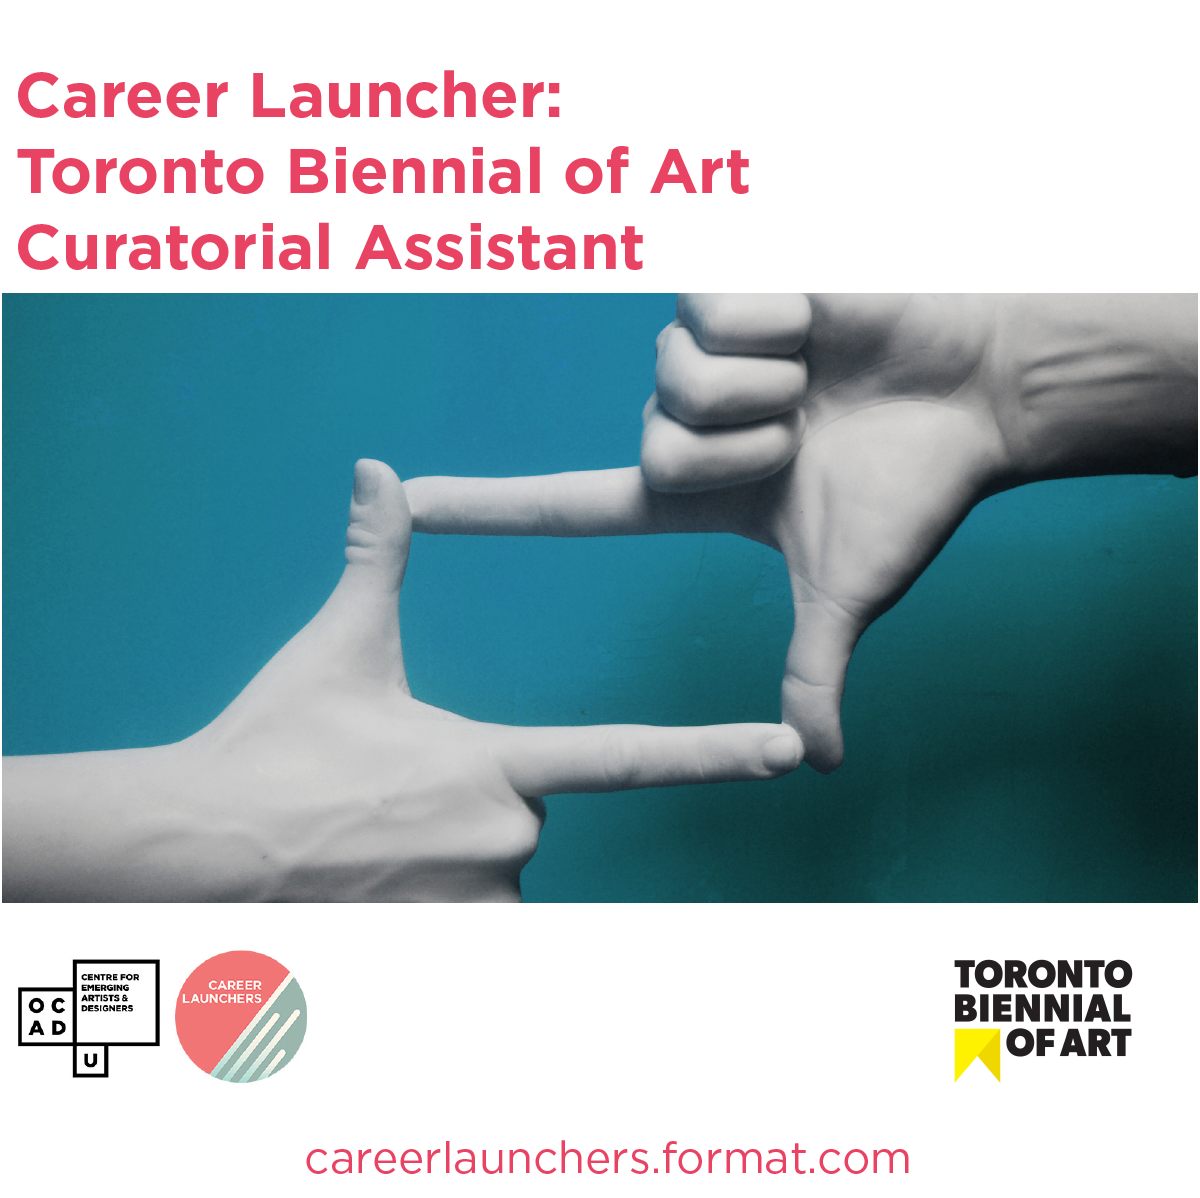 Call for Applications - Toronto Biennale of Art: Curatorial Assistant